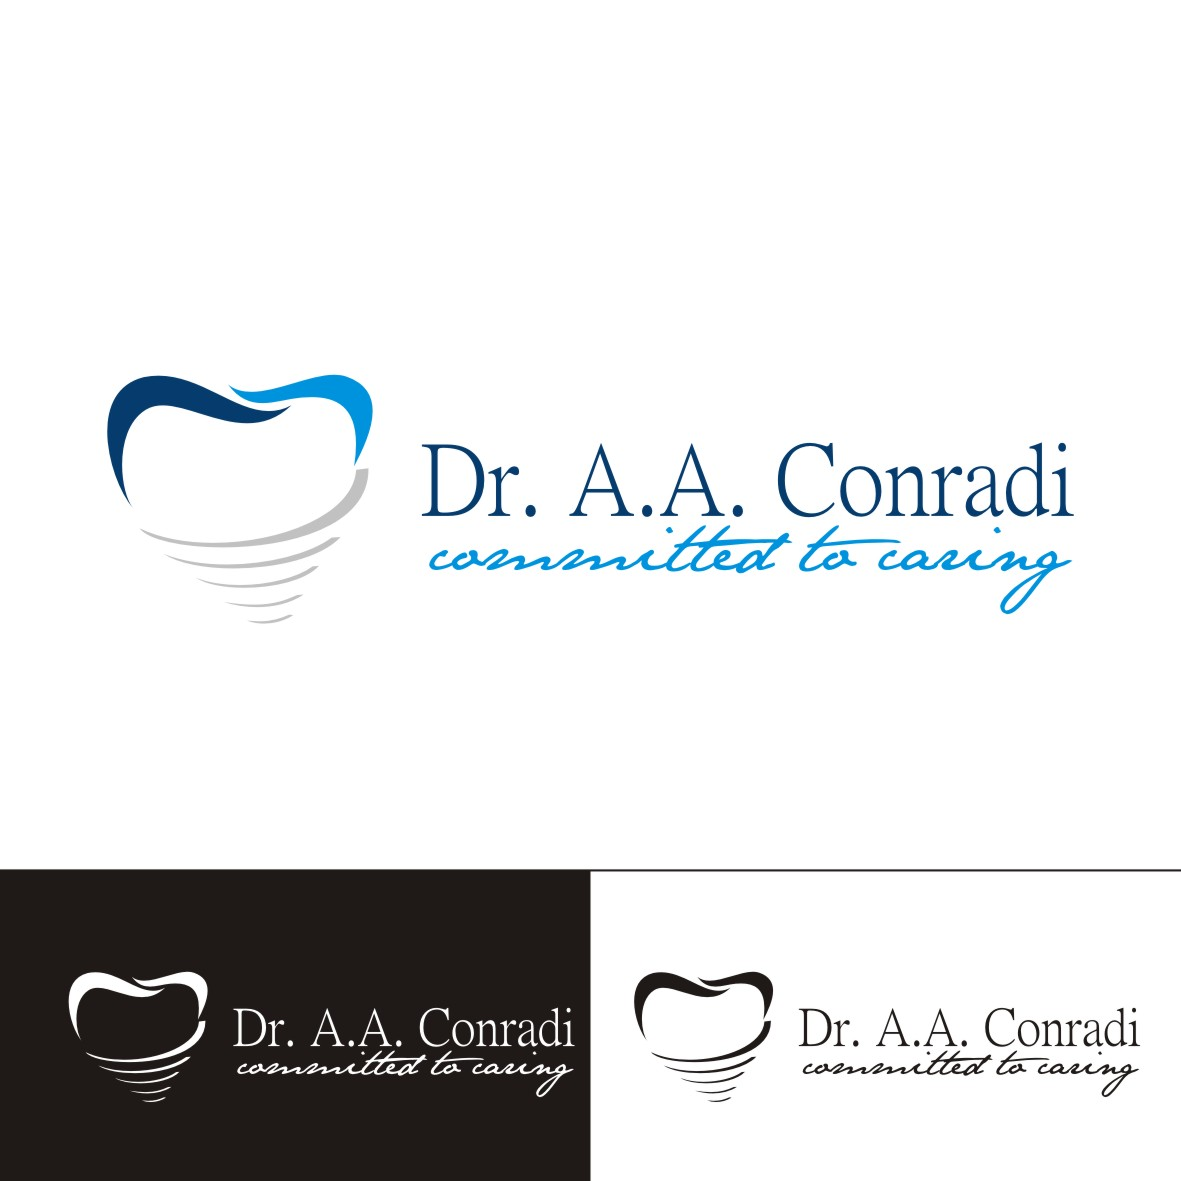 Logo Design by arteo_design - Entry No. 169 in the Logo Design Contest Unique Logo Design Wanted for Dr. A.A. Conradi.